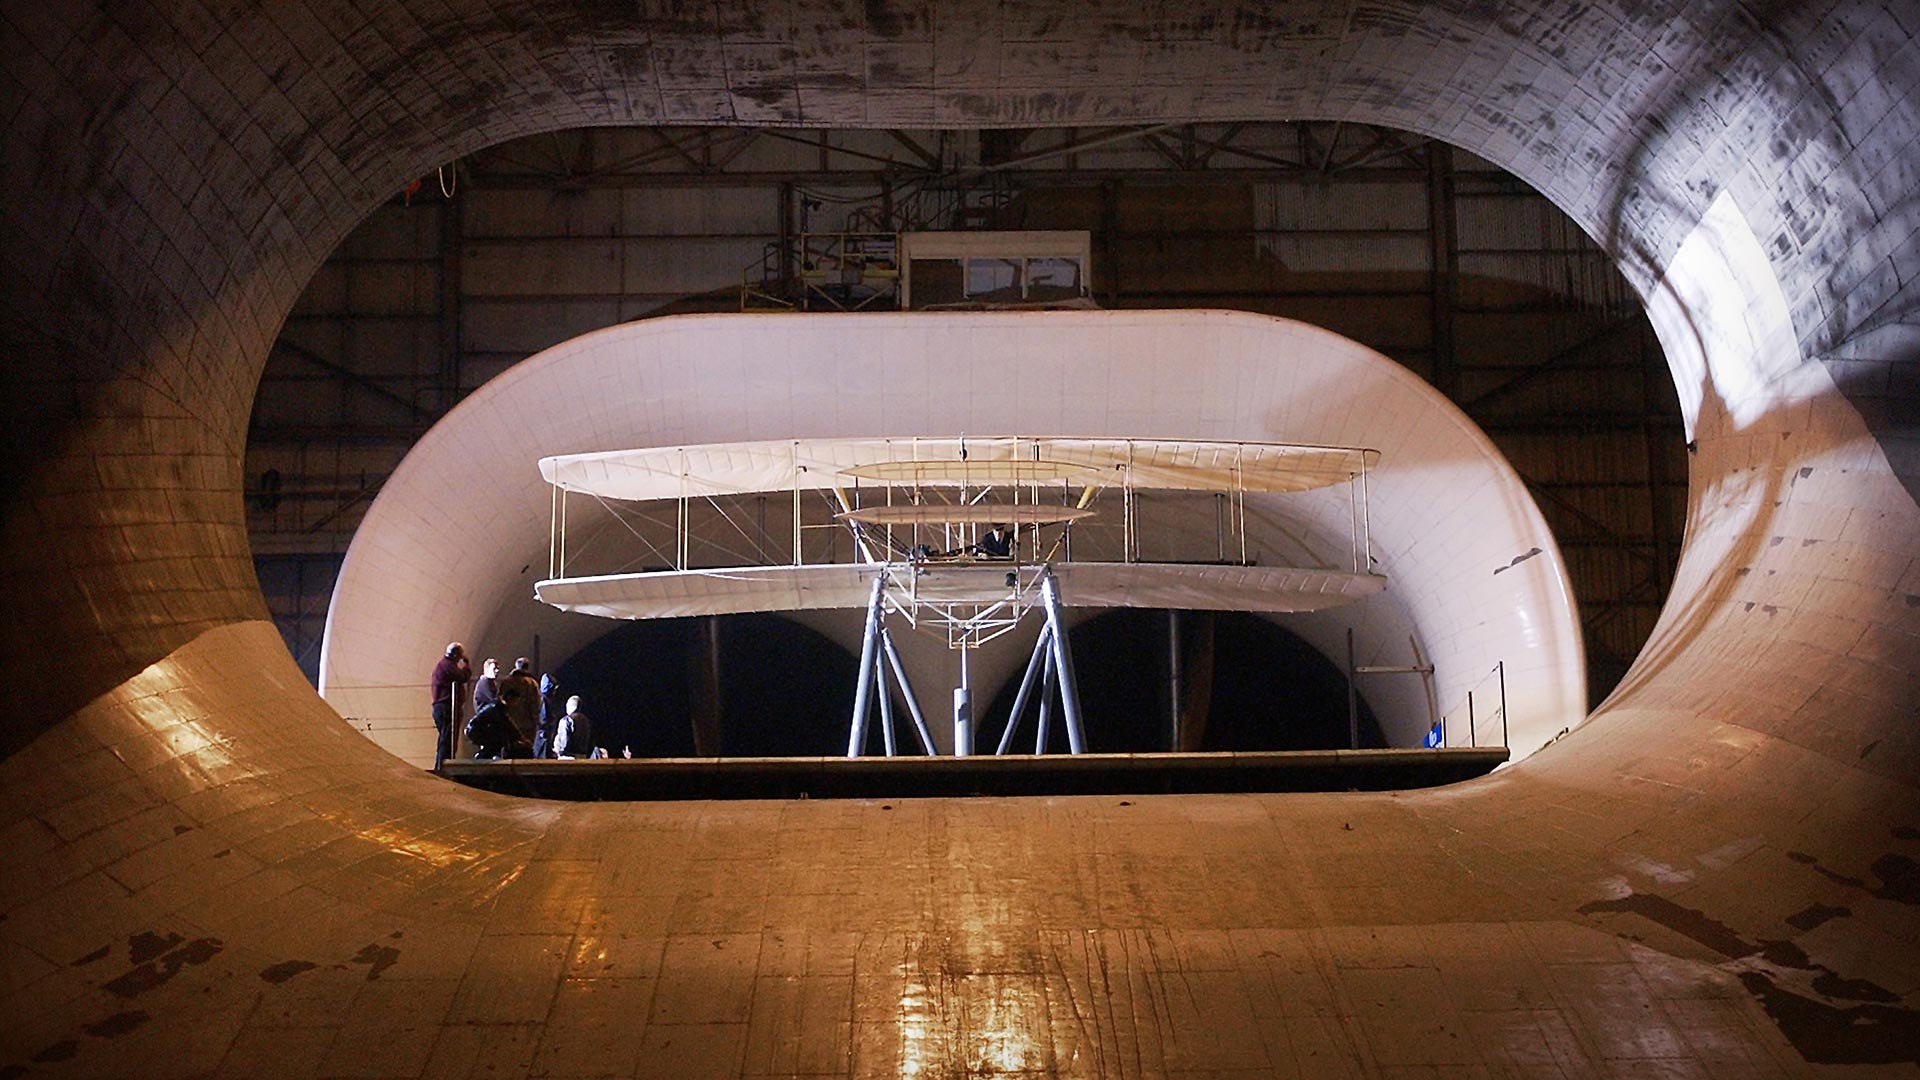 Replica of the Wright Flyer undergoing aerodynamic tests at NASA